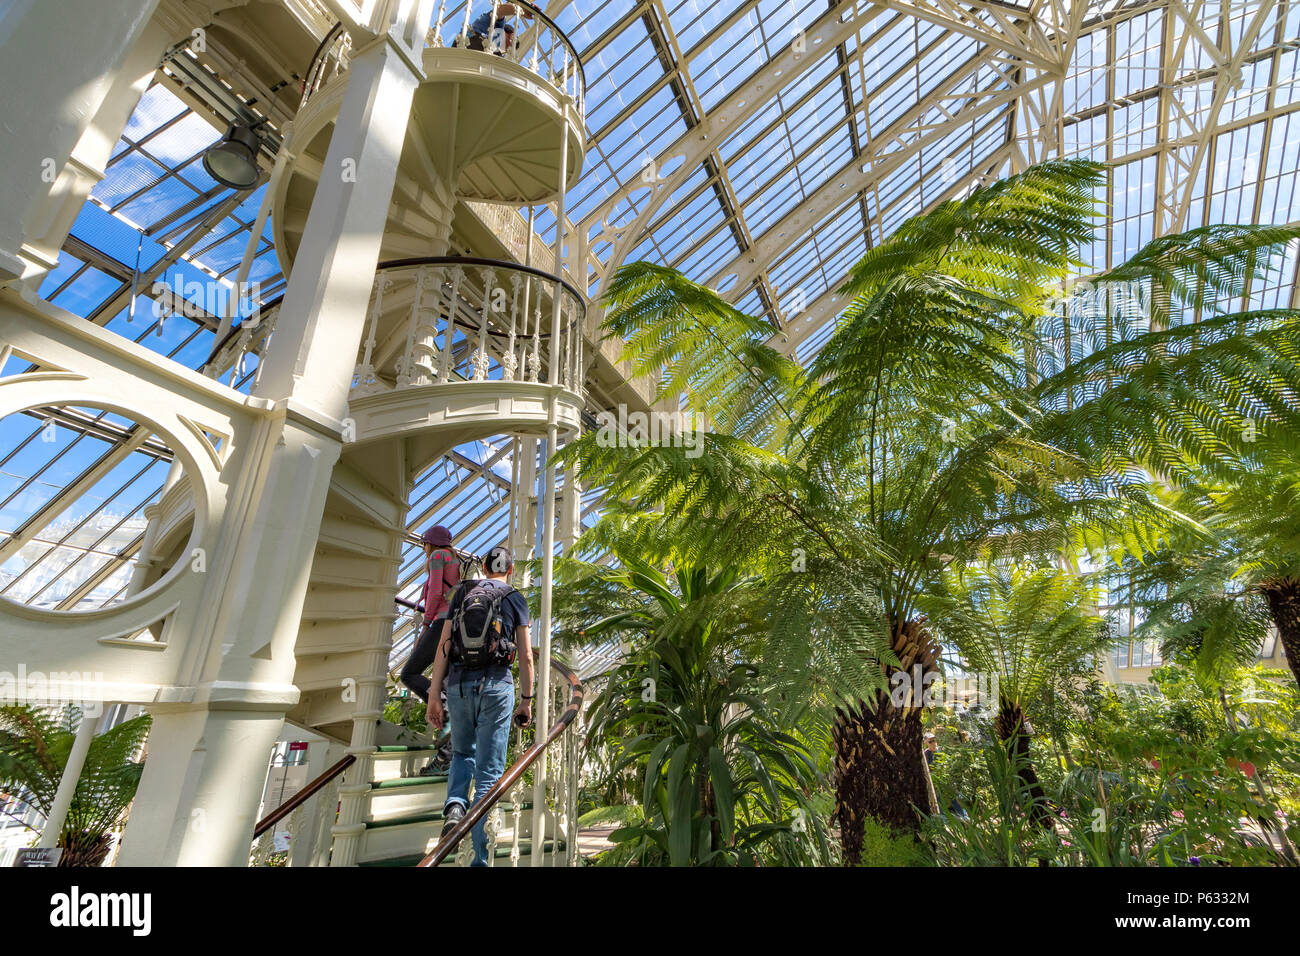 People visiting Kew Gardens in the newly restored Temperate House   which has now reopened to visitors after a 5 year restoration project in May 2018 - Stock Image